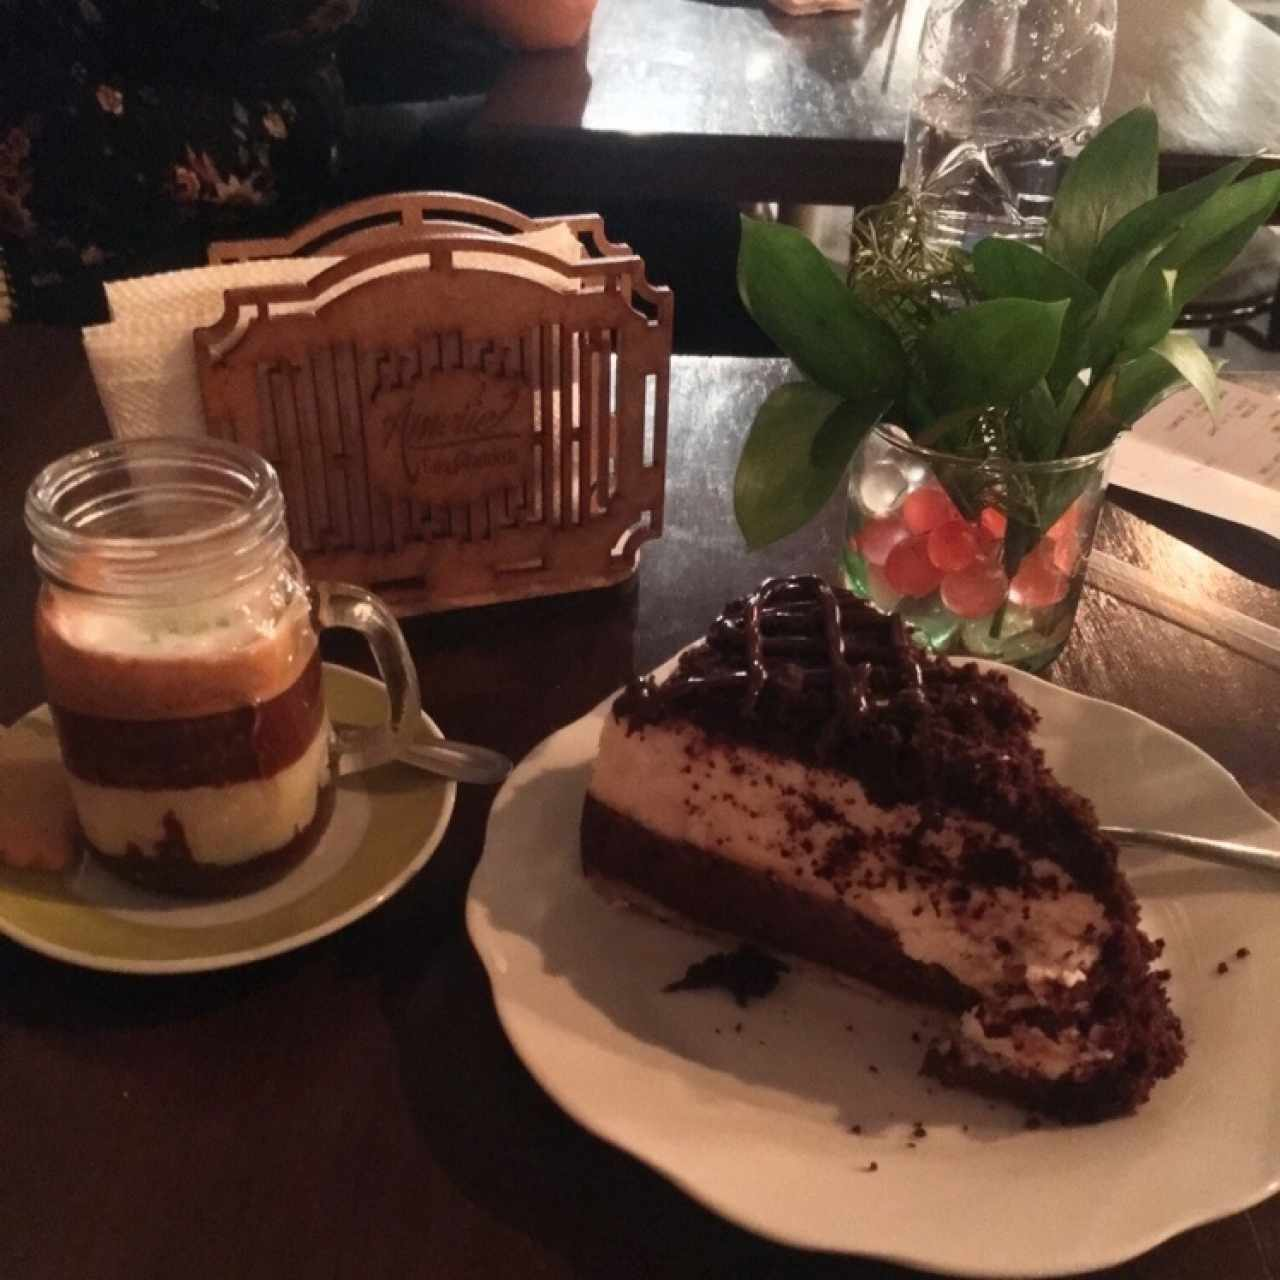 Cheesecake de brownie y bom bom Amelie